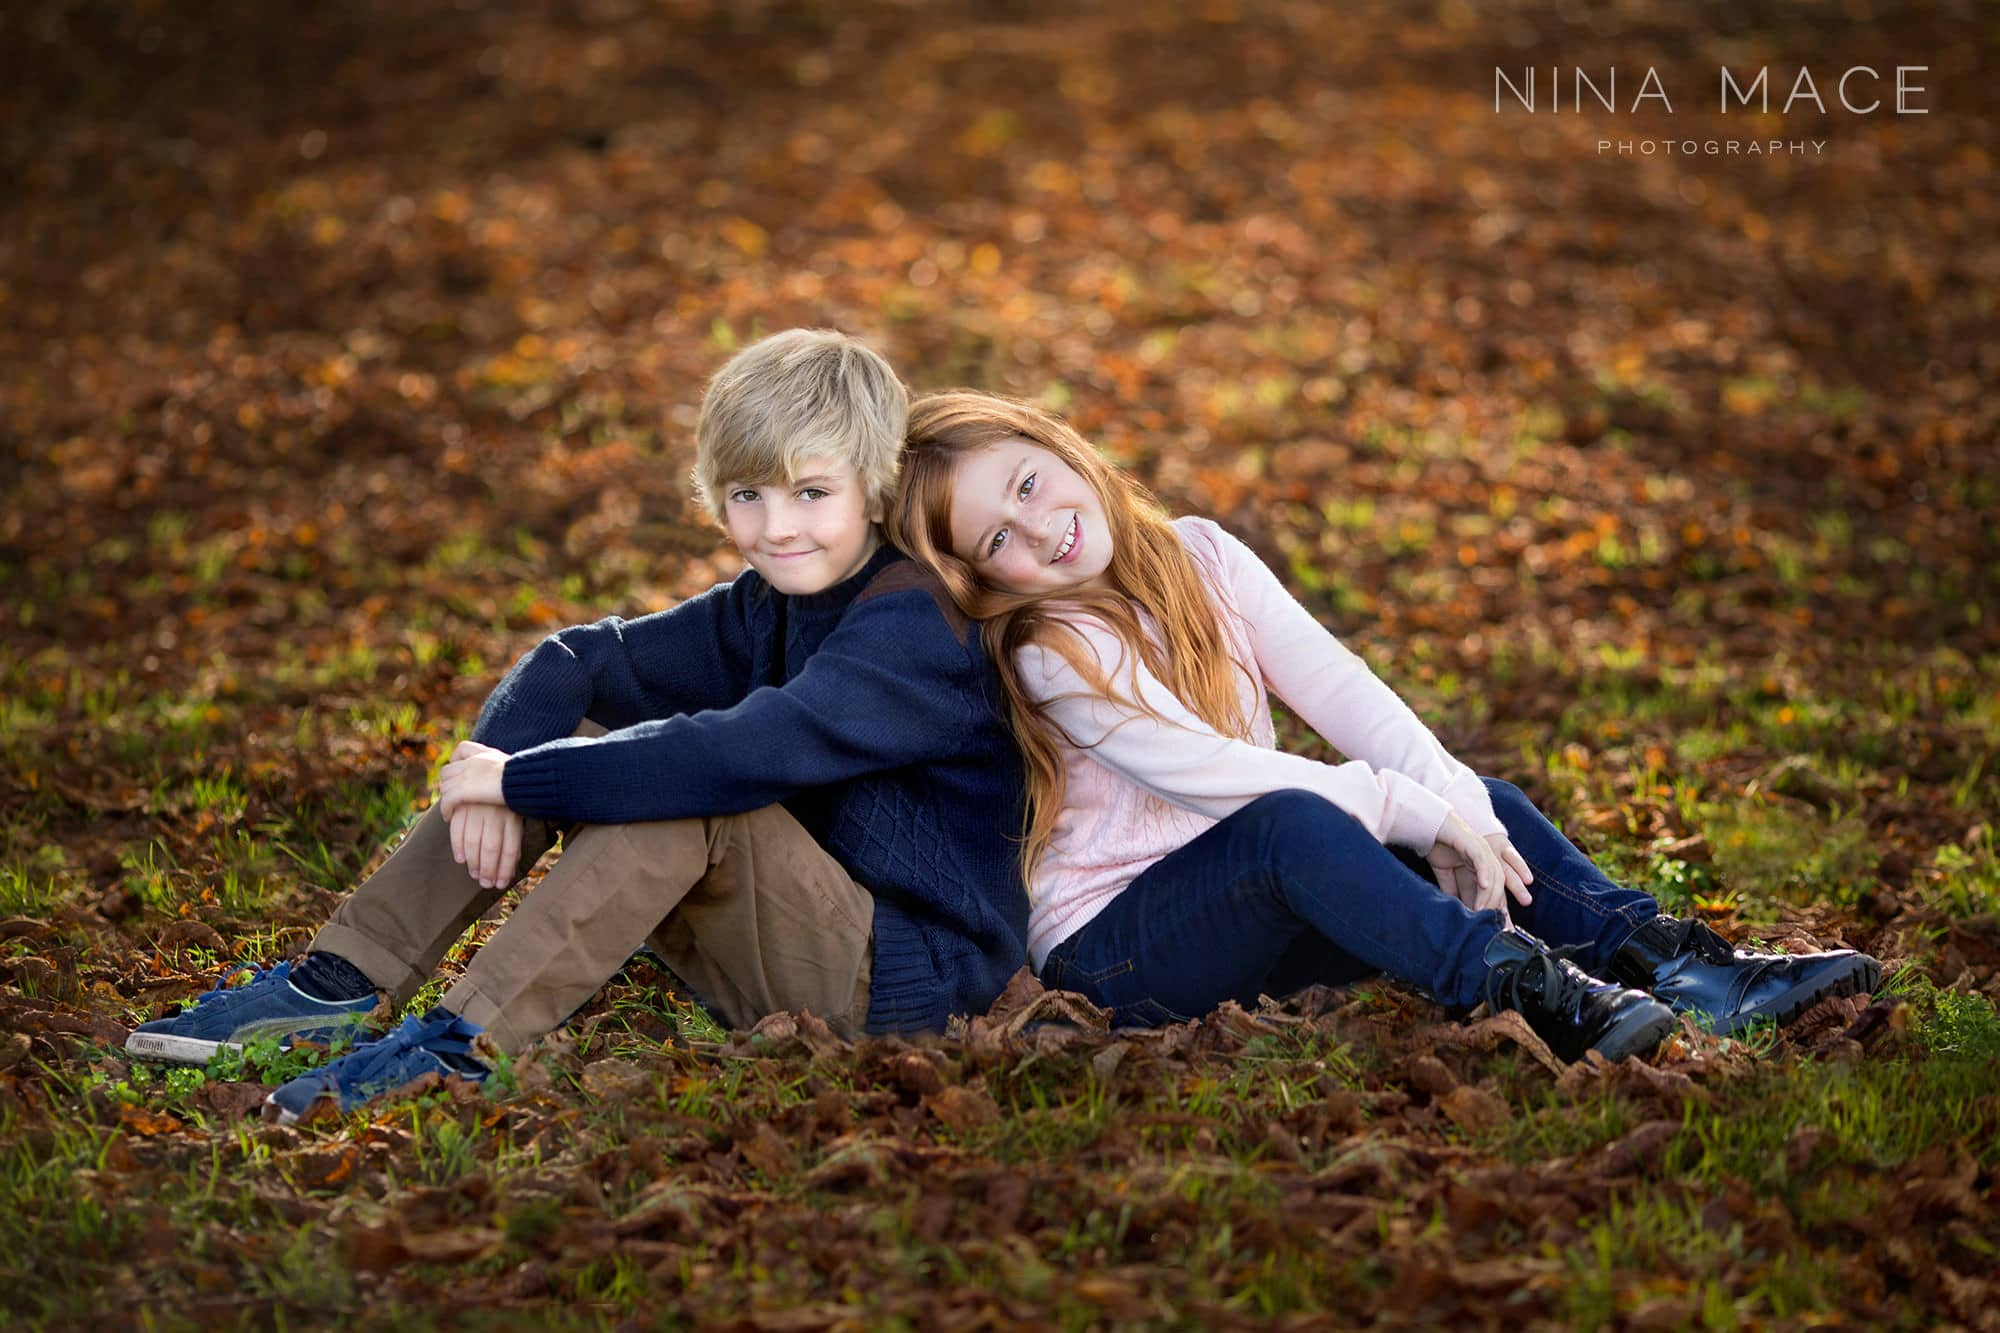 Award winning childrens photography